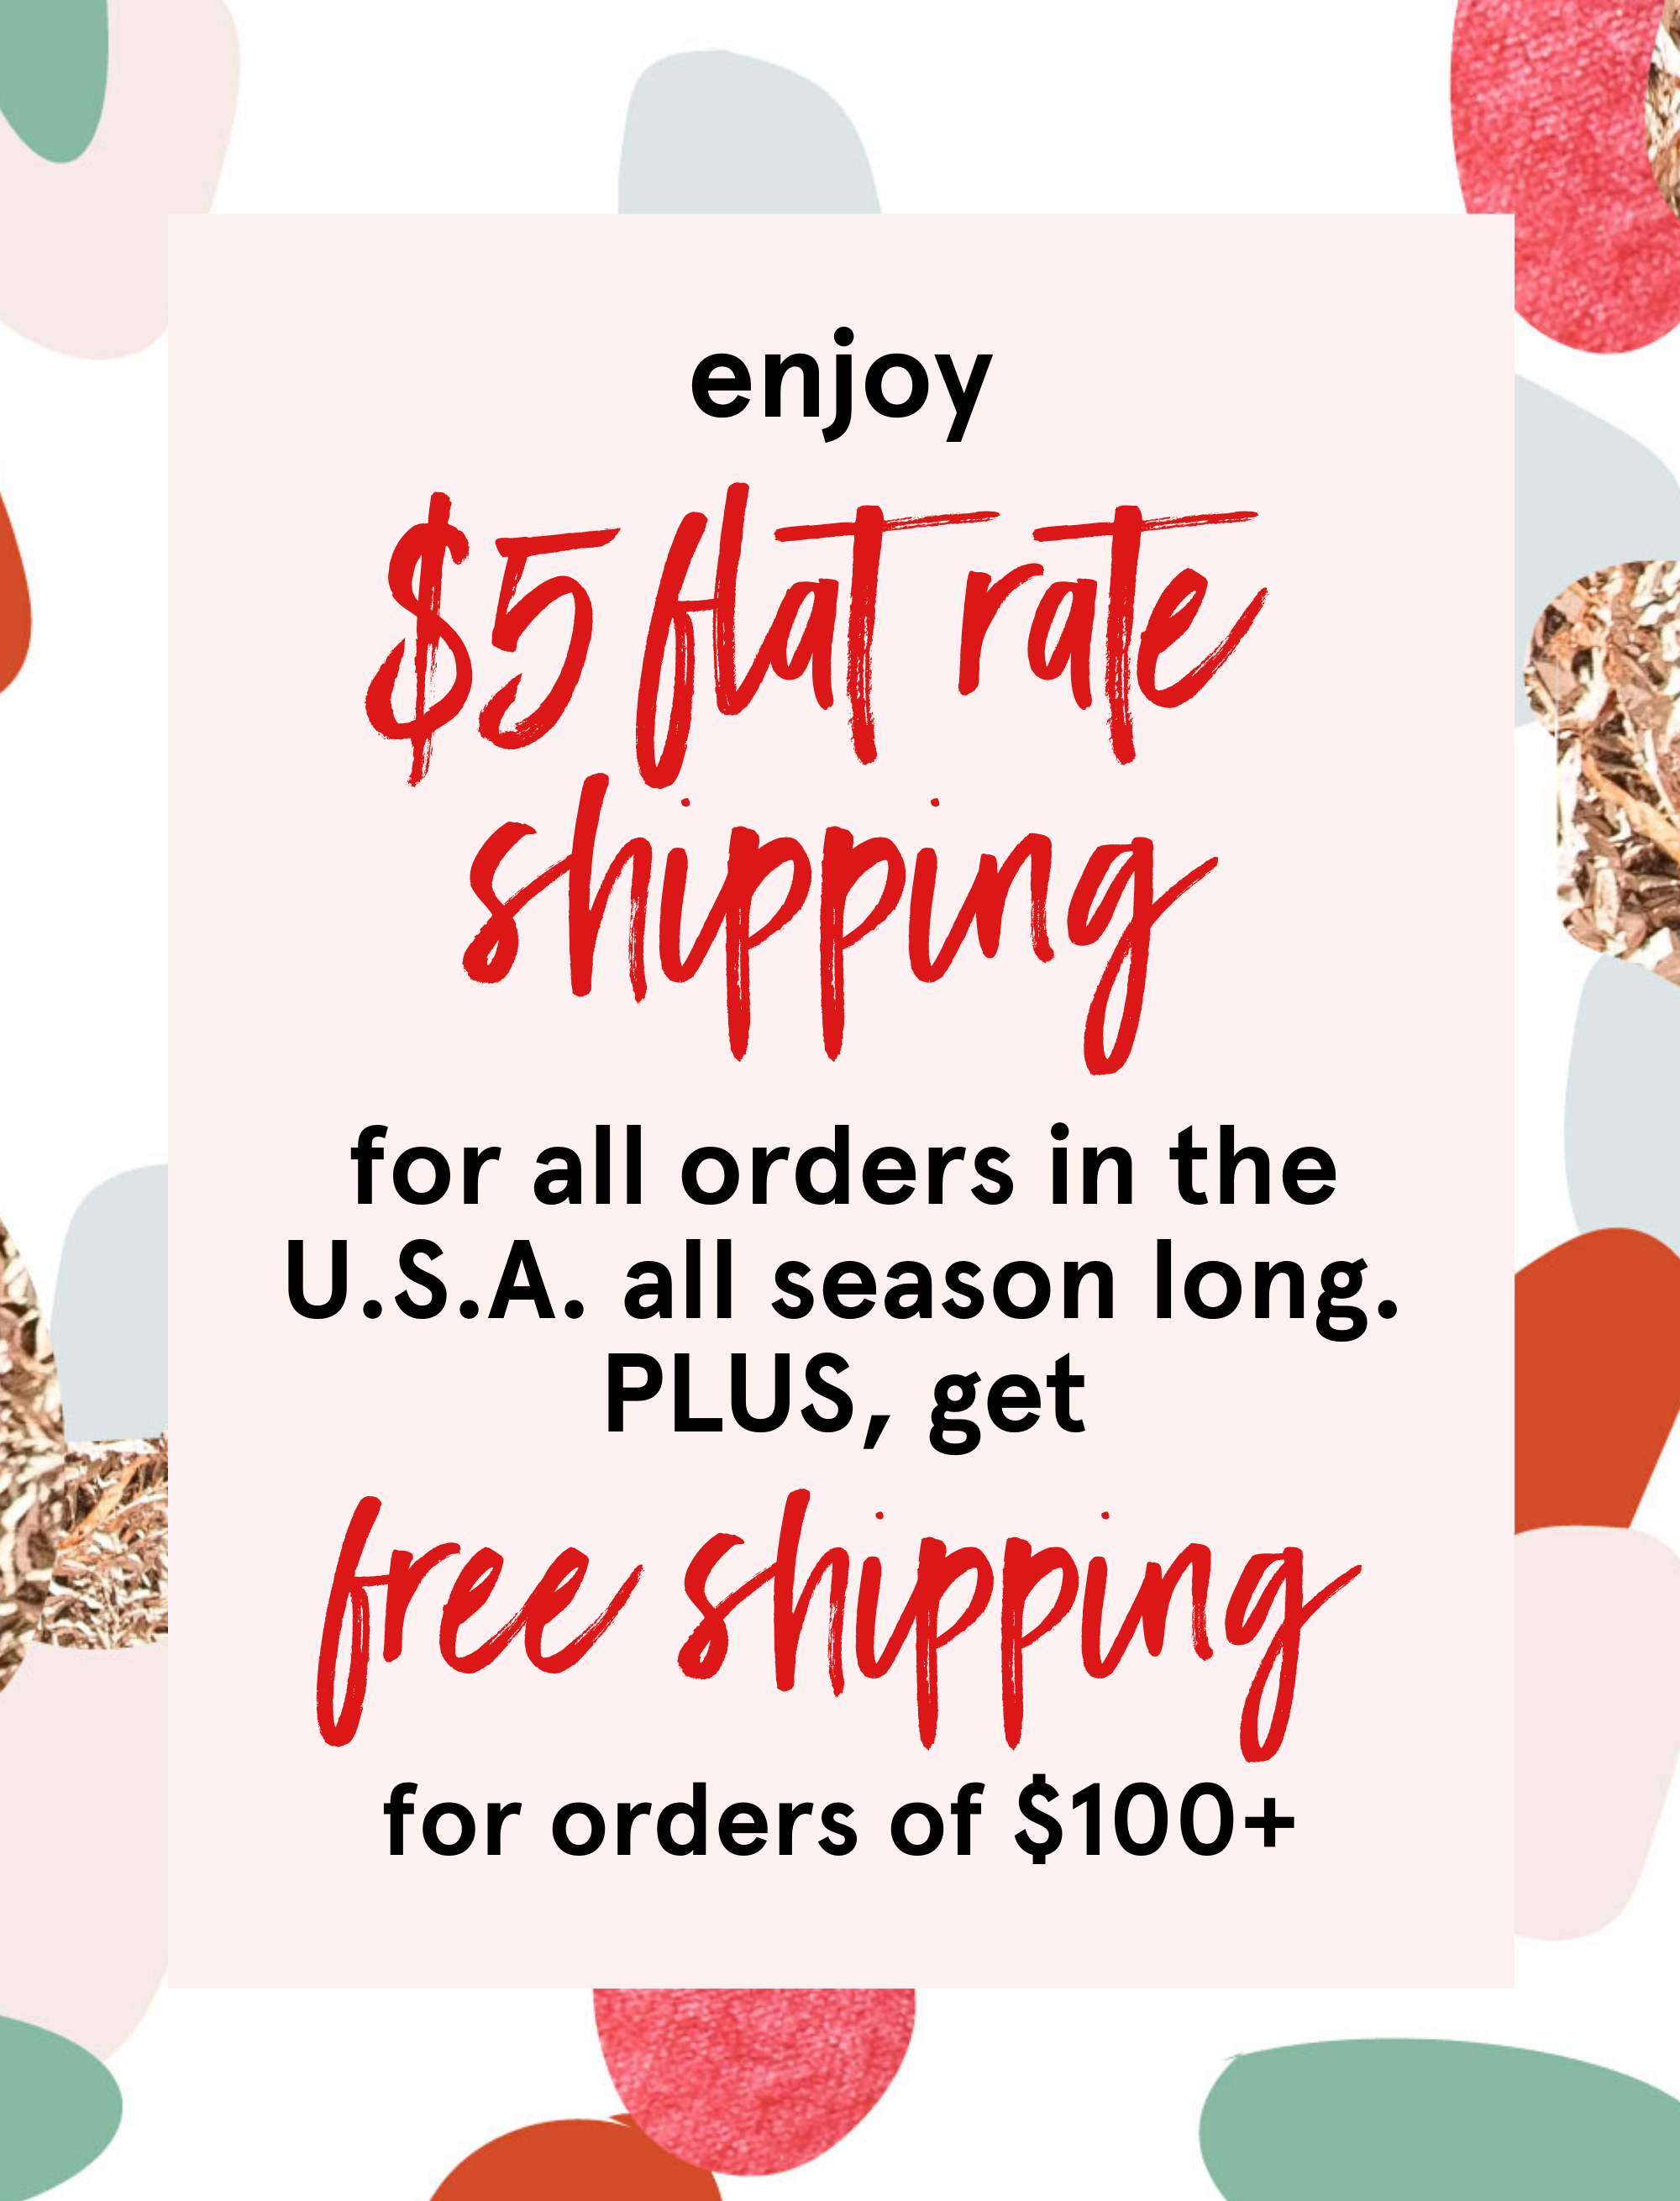 enjoy flat rate shipping of $5 for all U.S. orders